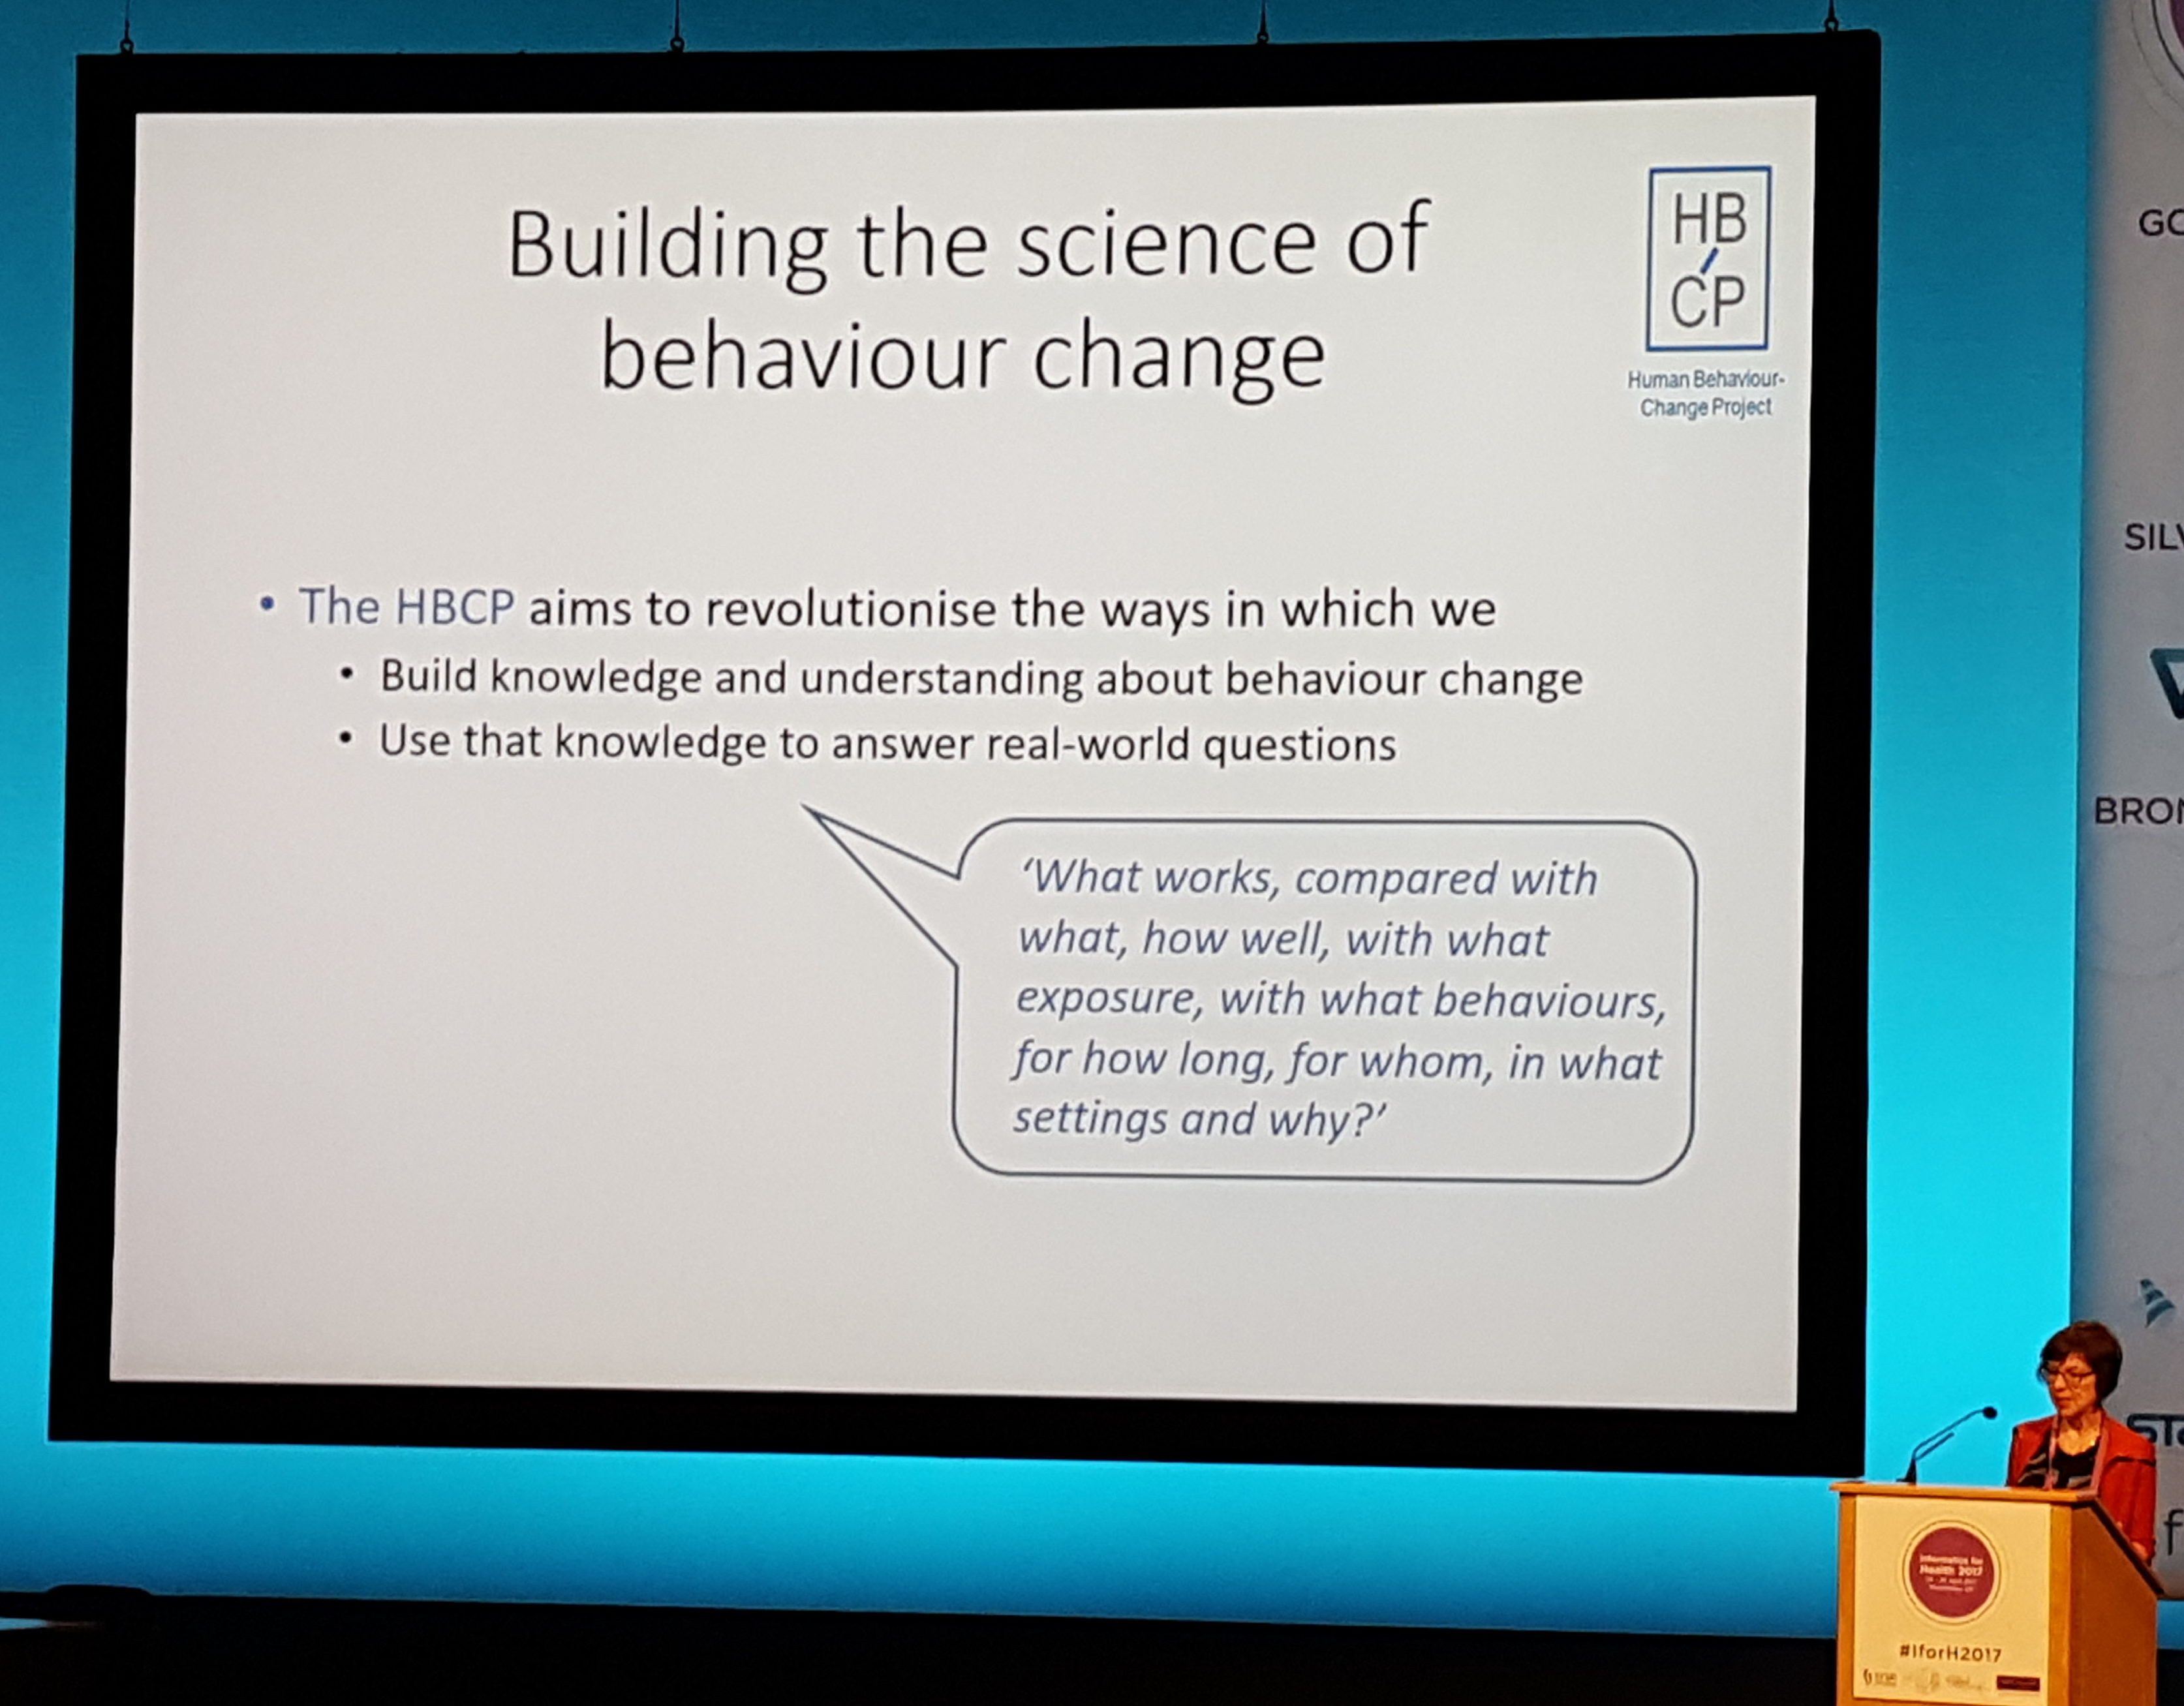 Susan Michie, University College London talks about the Human Behavior-Change Project